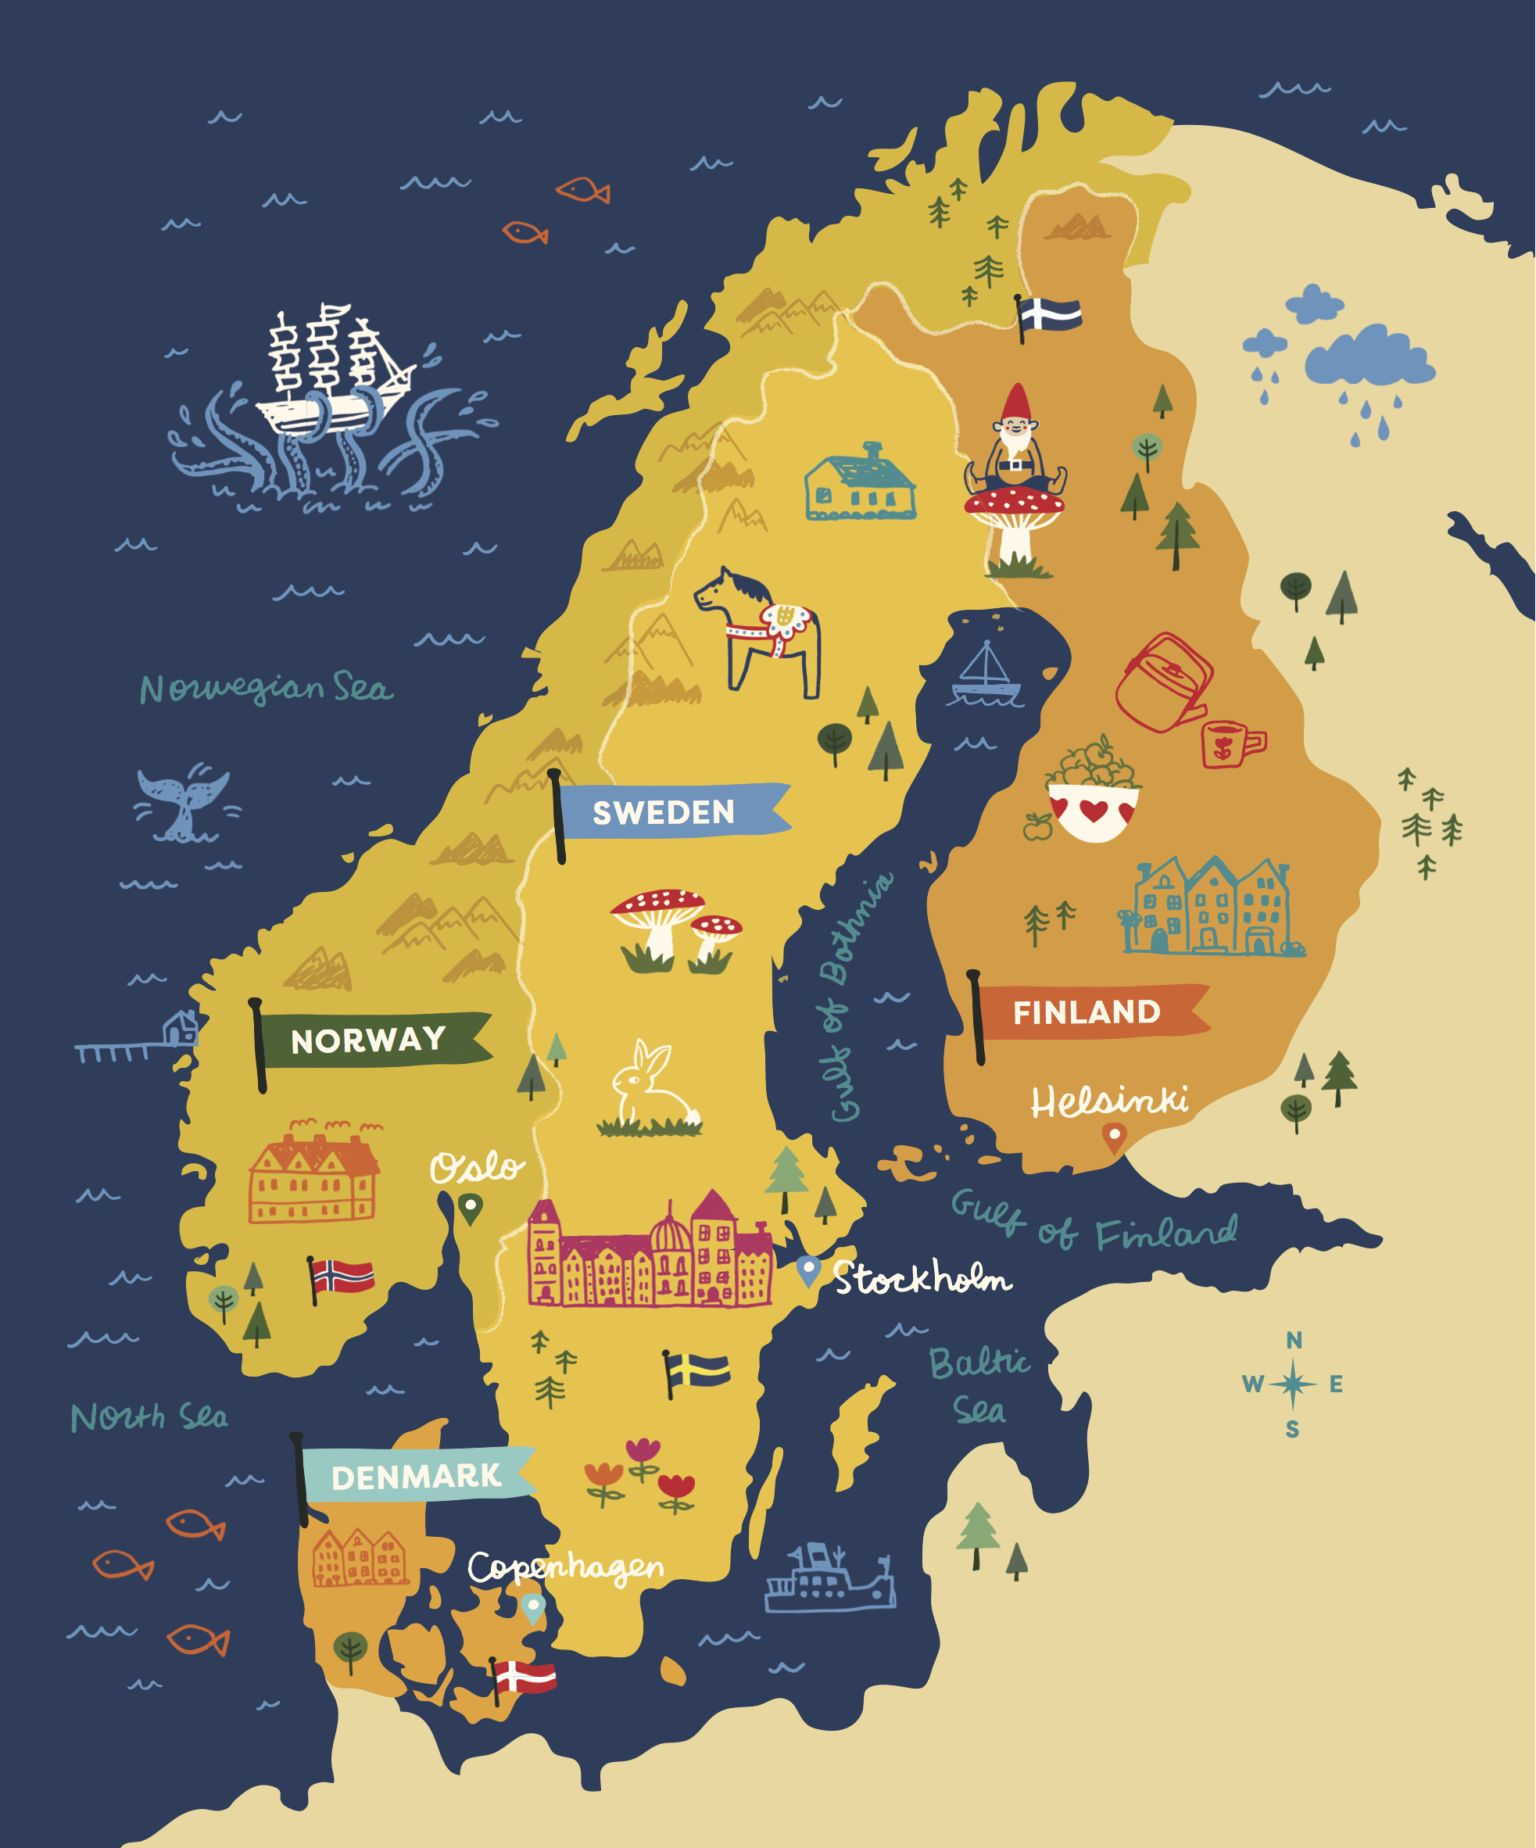 Scandinavian Gatherings What Is Scandinavia Scandinavia Pictorial Maps Illustrated Map